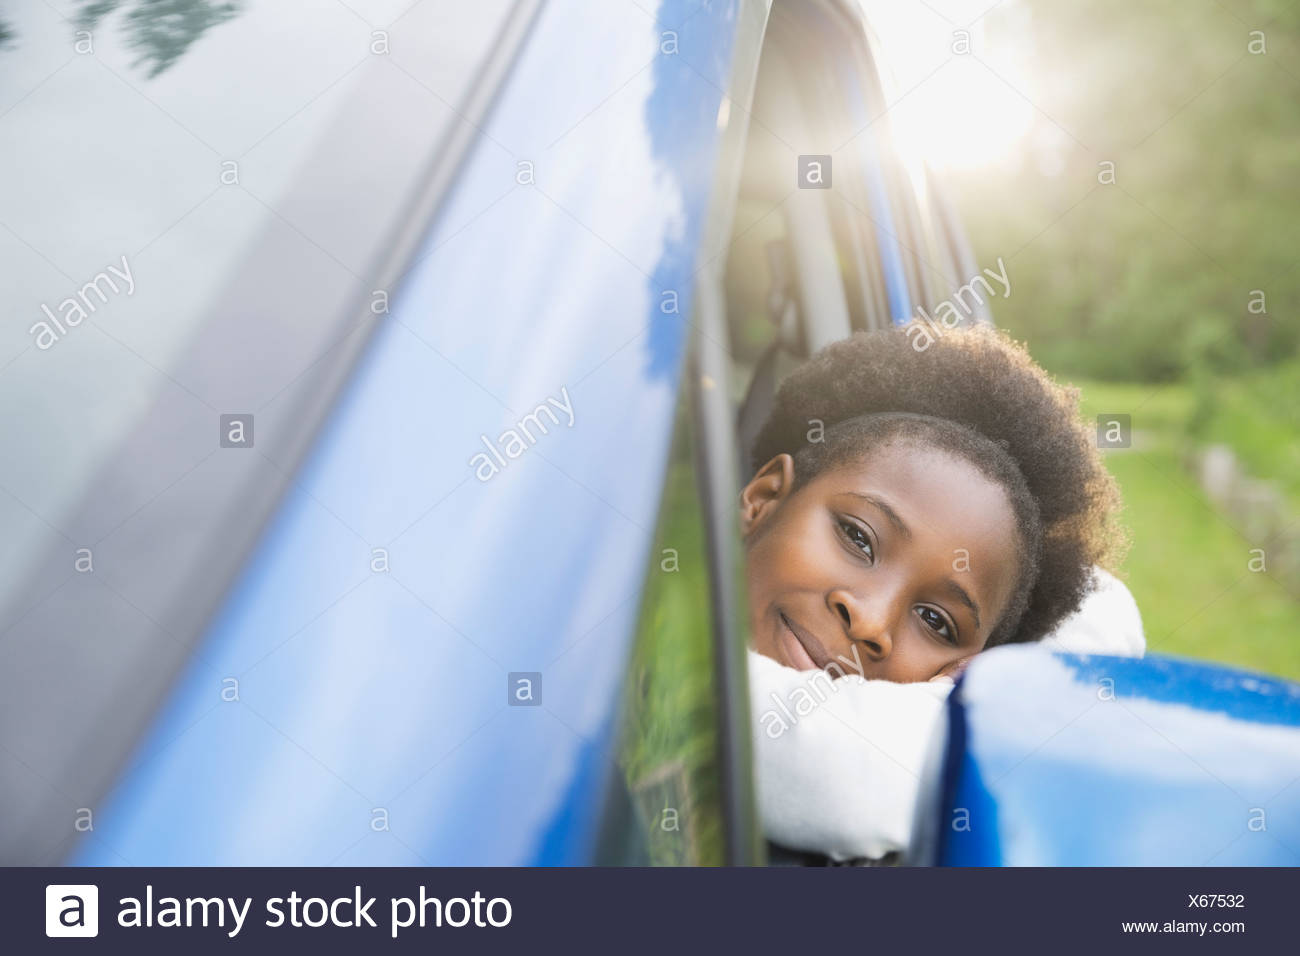 Portrait of girl looking out of car window - Stock Image